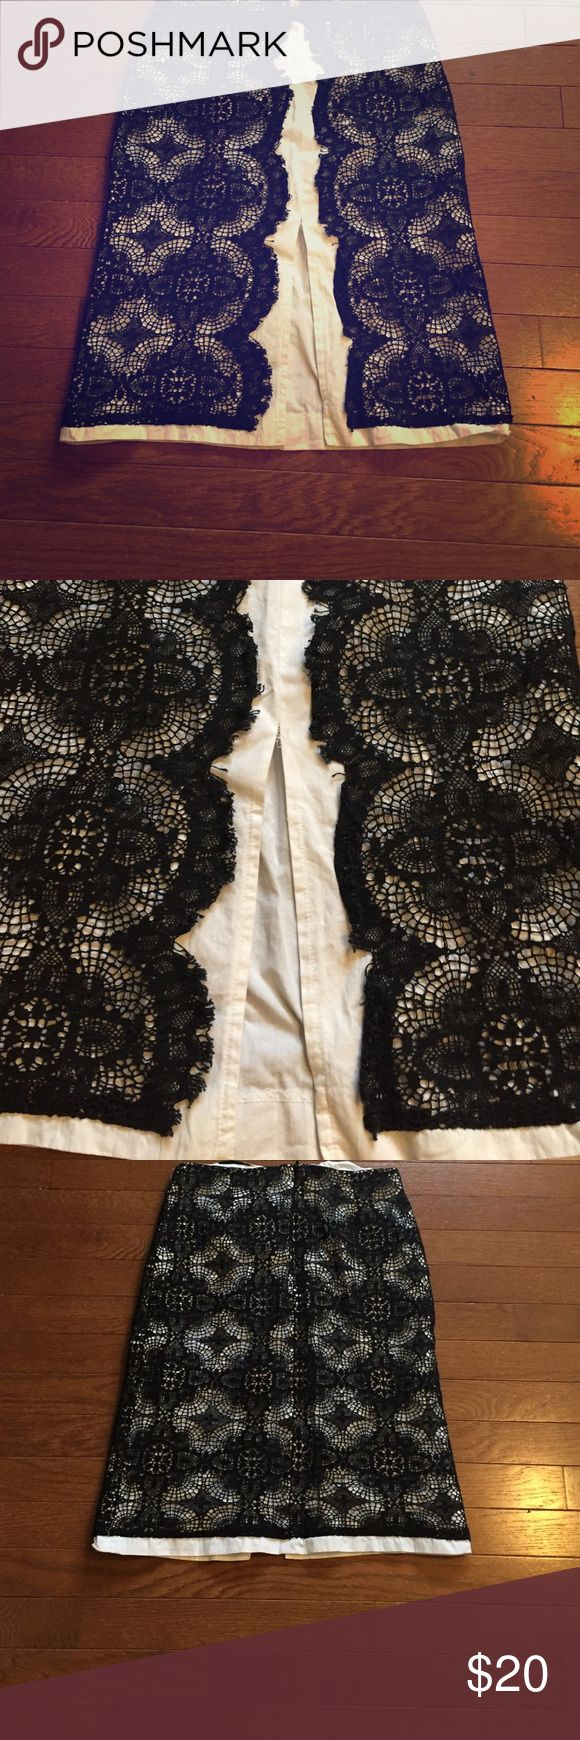 Black and white lace skirt Great for cocktail or a night out! Skirts Pencil